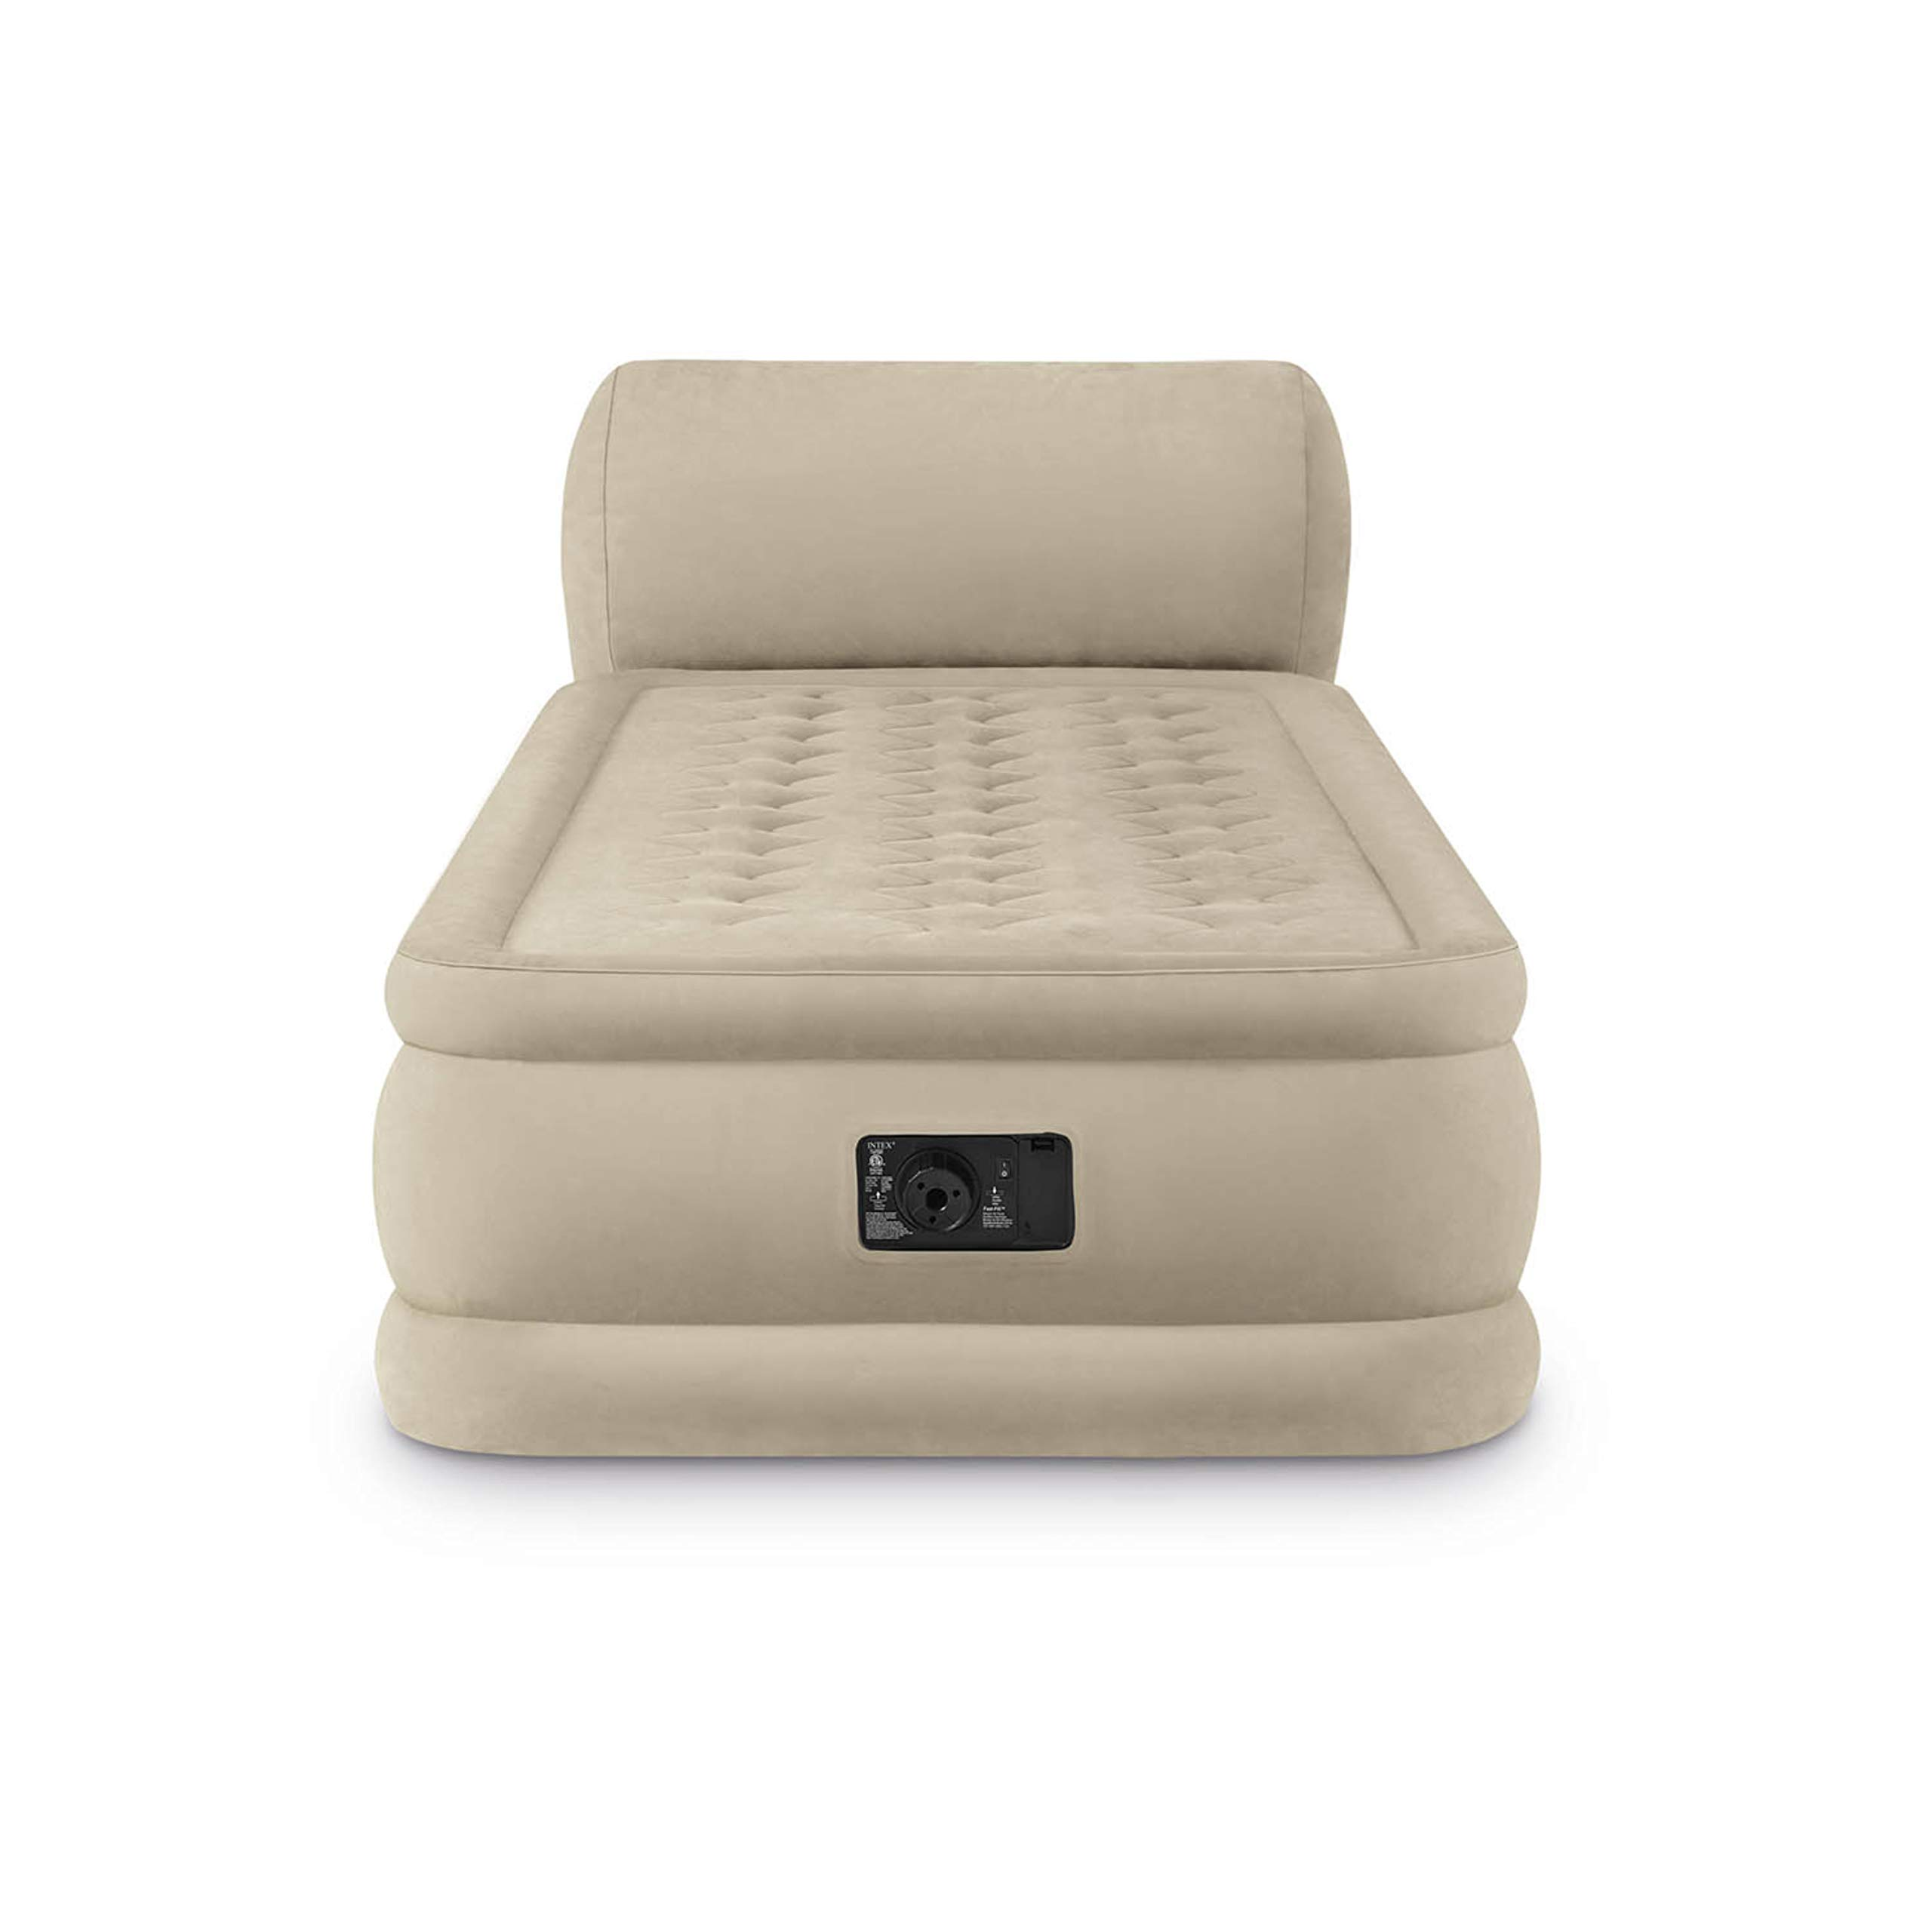 Air Mattress With Pump. This DuraBeam Ultra Plush Headboard Blow Up Airbed With Built In Electric Pump For Adults Indoor Or Outdoor Use. Raised Inflatable Bed Is Best As Camping Or Guest Bed Twin 31''